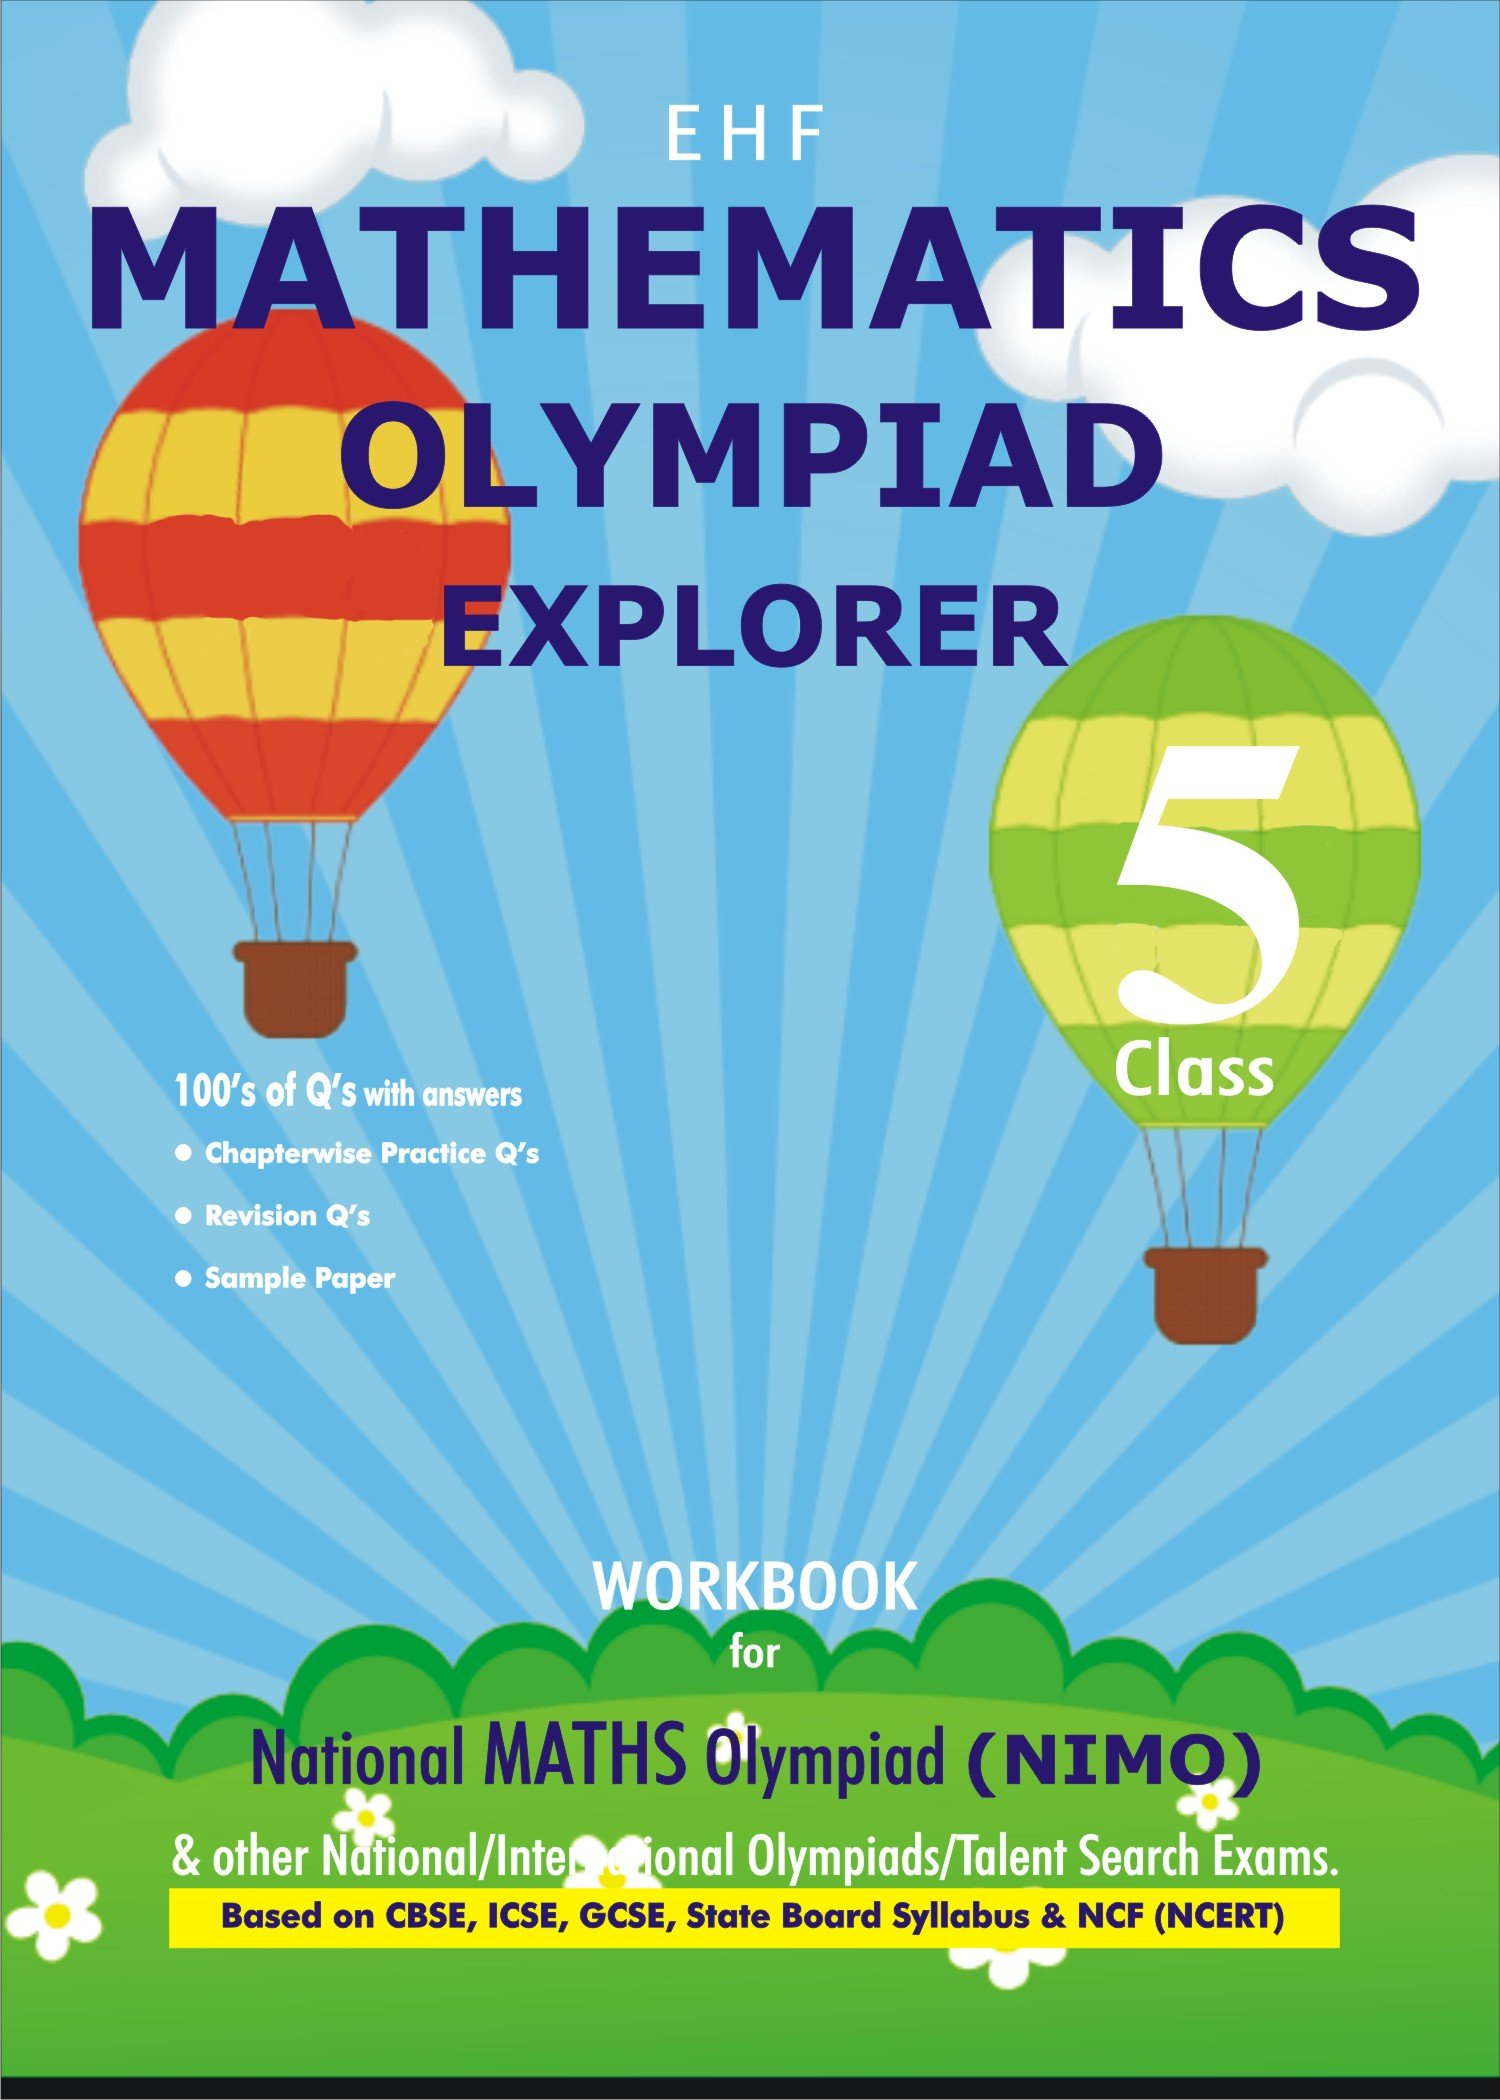 Buy MATHEMATICS OLYMPIAD EXPLORER CLASS 5 Book Online at Low Prices in  India | MATHEMATICS OLYMPIAD EXPLORER CLASS 5 Reviews & Ratings - Amazon.in